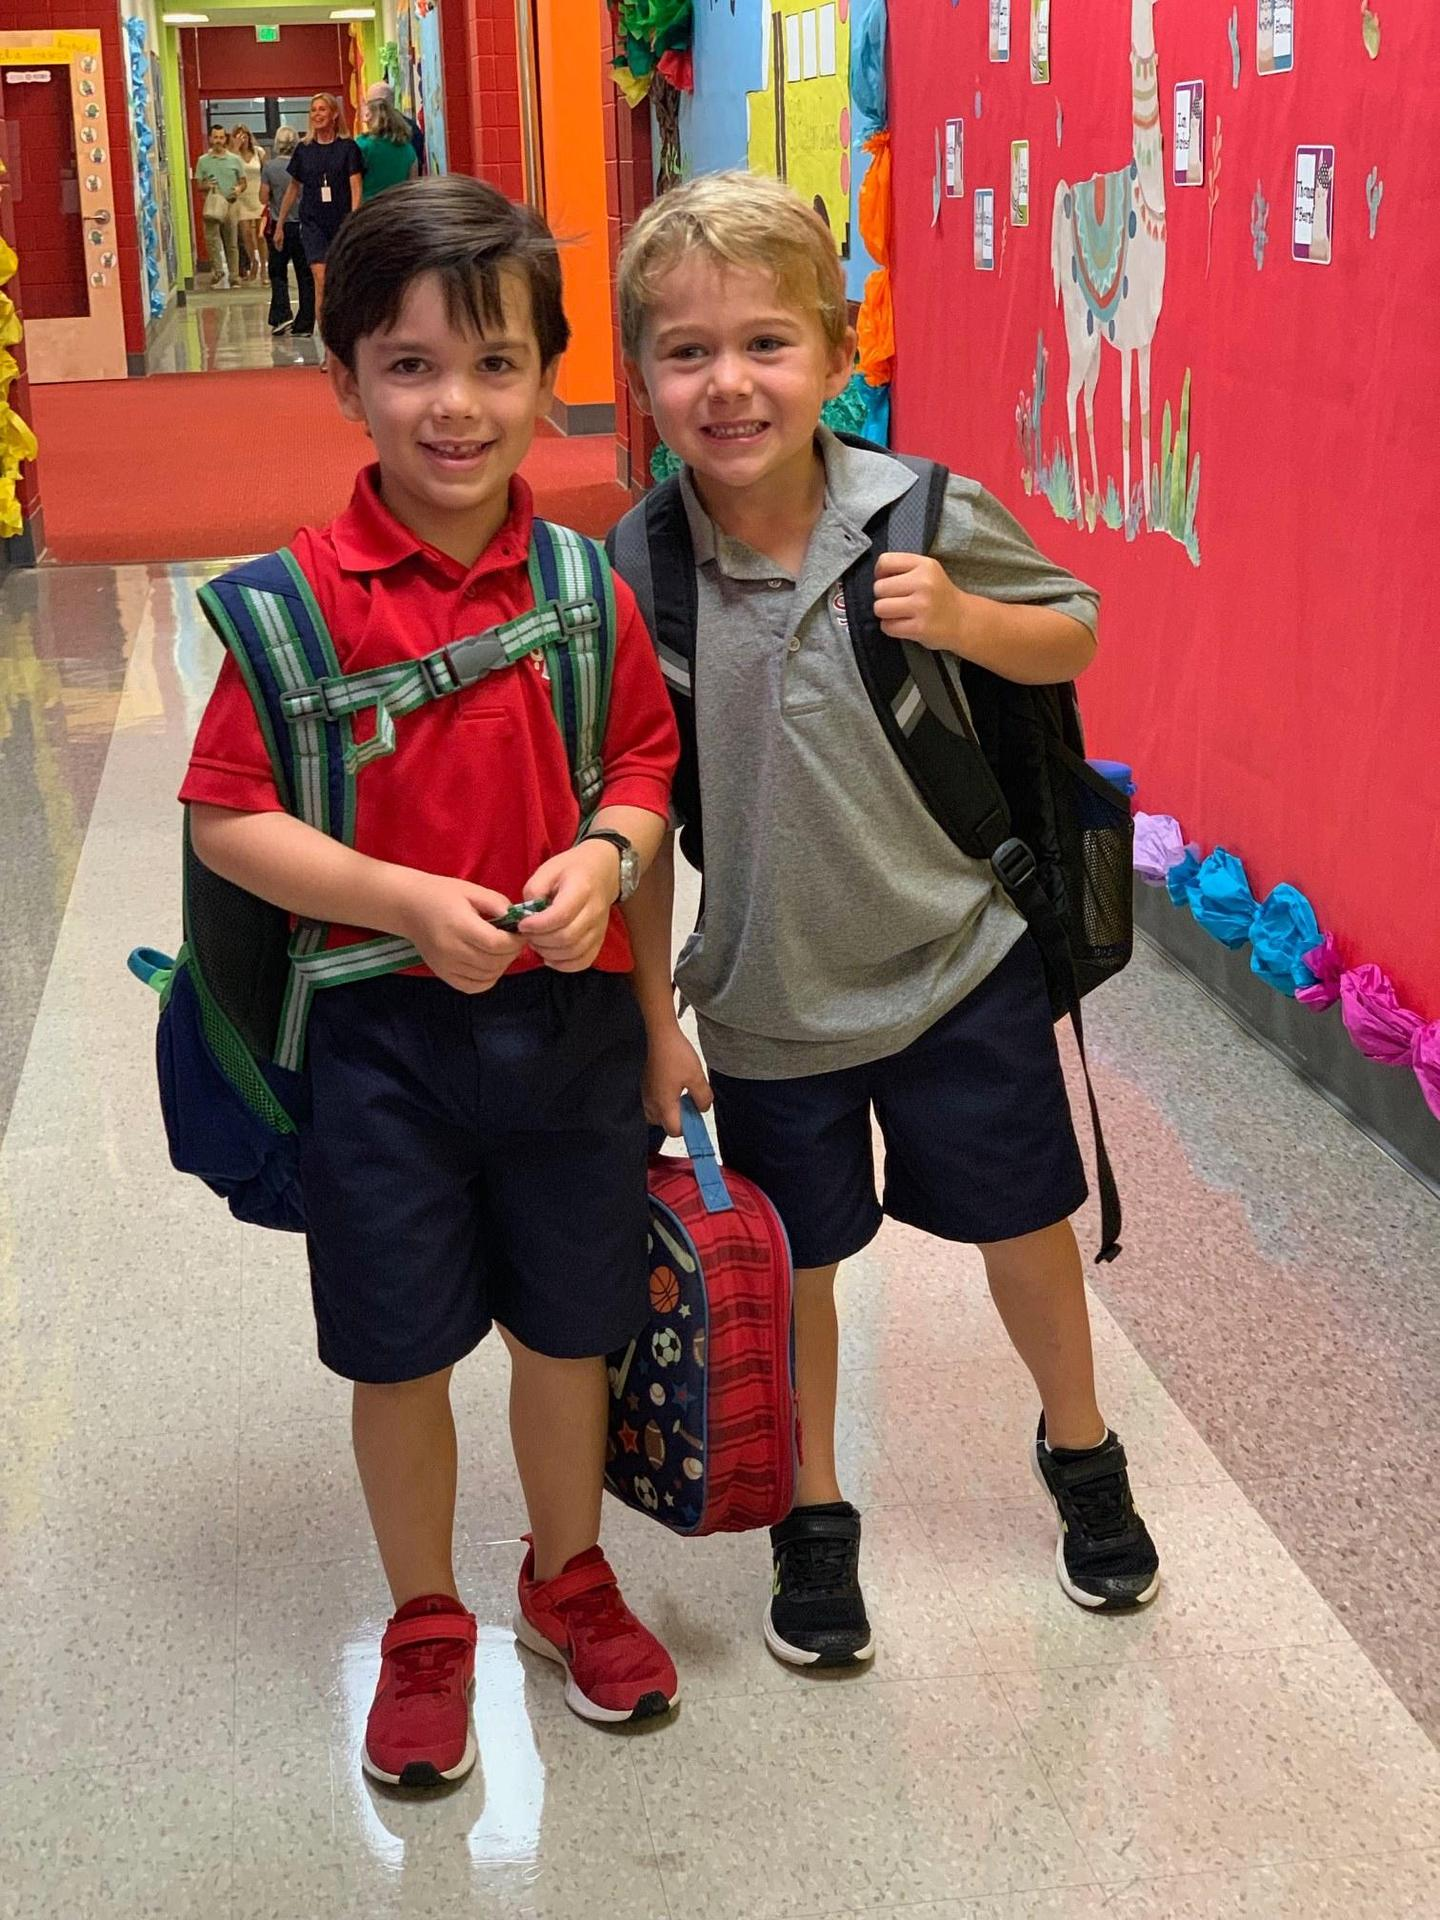 Two elementary students